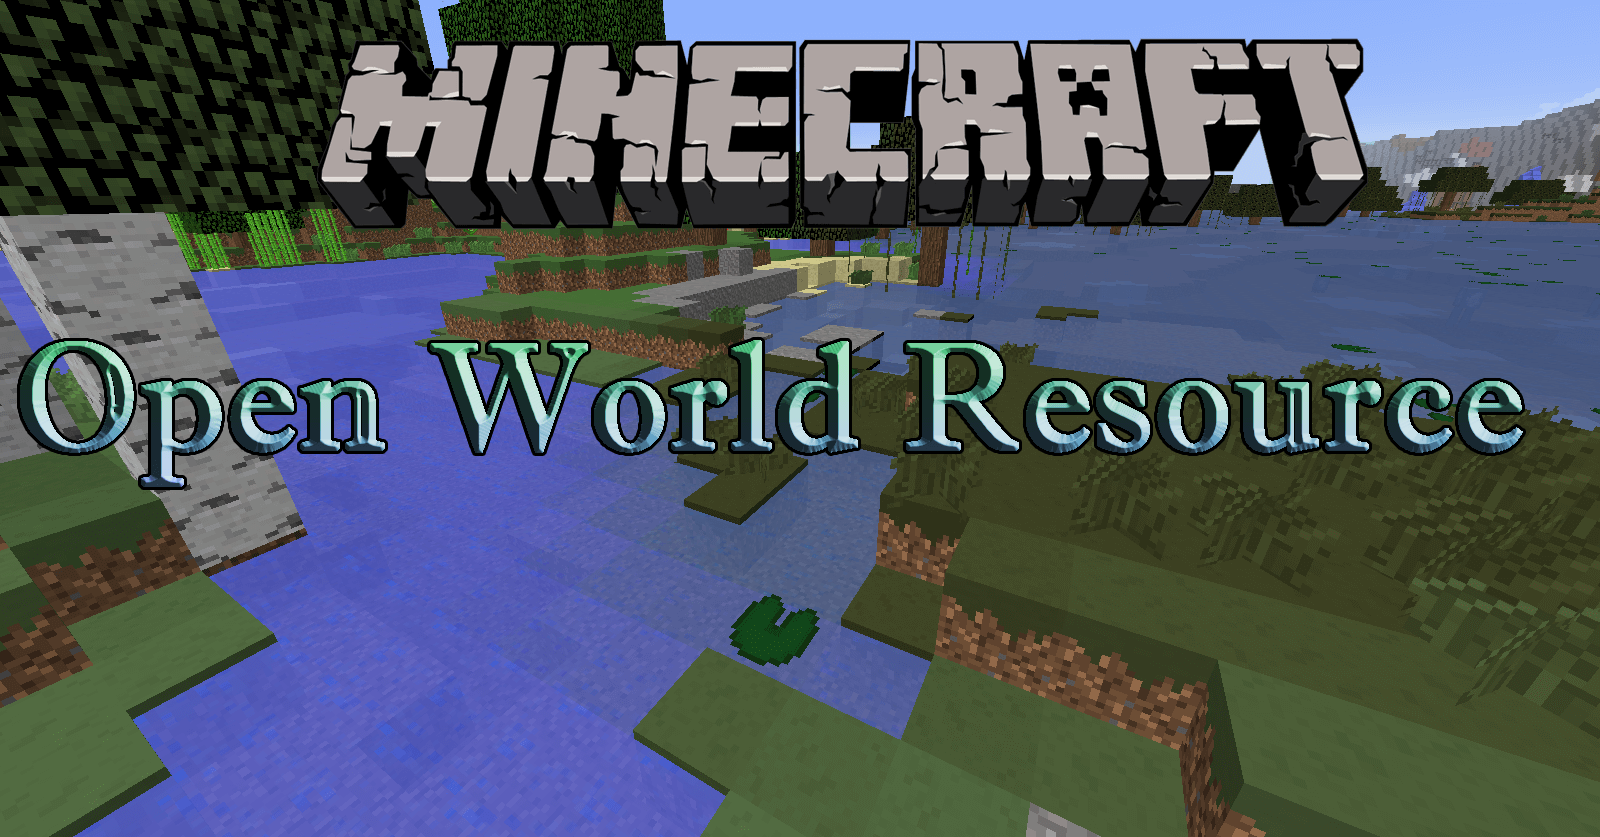 Open World Resource Pack скриншо т1